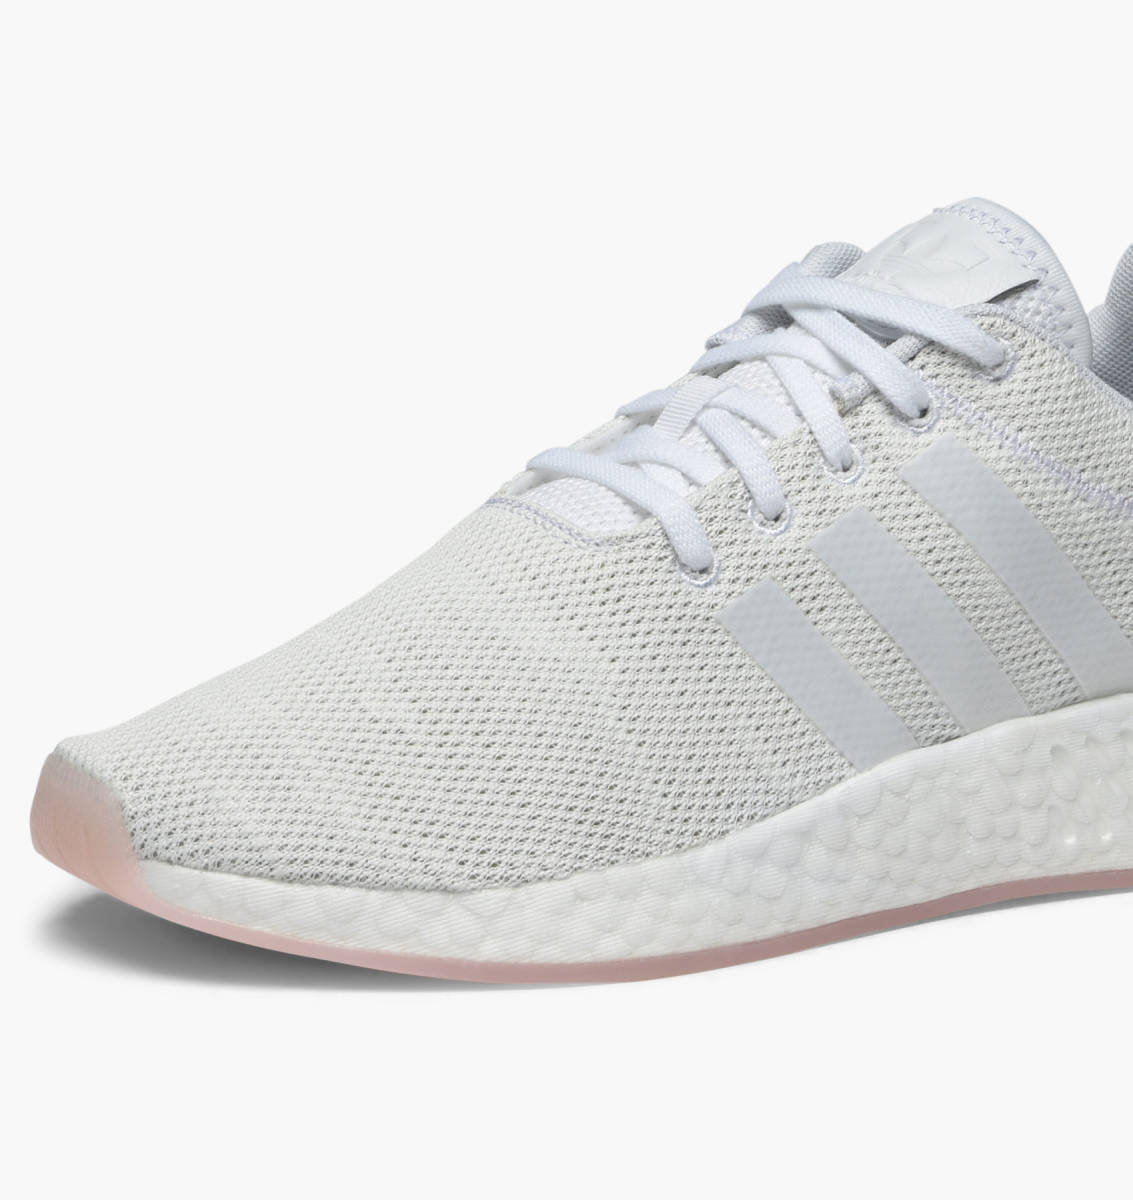 timeless design d4719 3e08f adidas Originals NMD R2 in weiss - CQ2009 | everysize